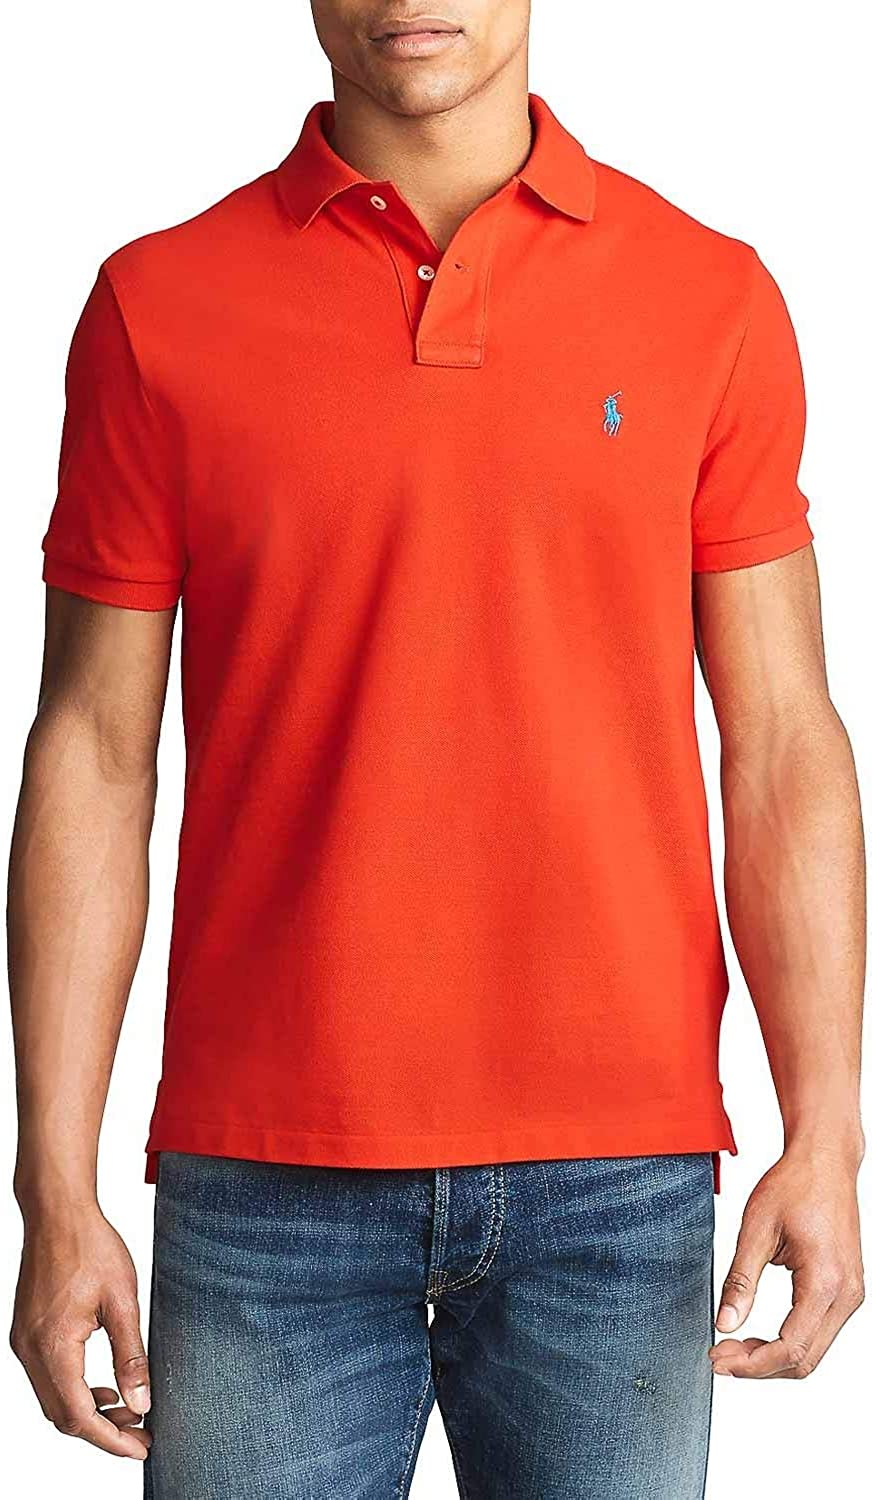 Polo Ralph Lauren Basic Rojo para Hombre x-Large Rojo: Amazon.es ...